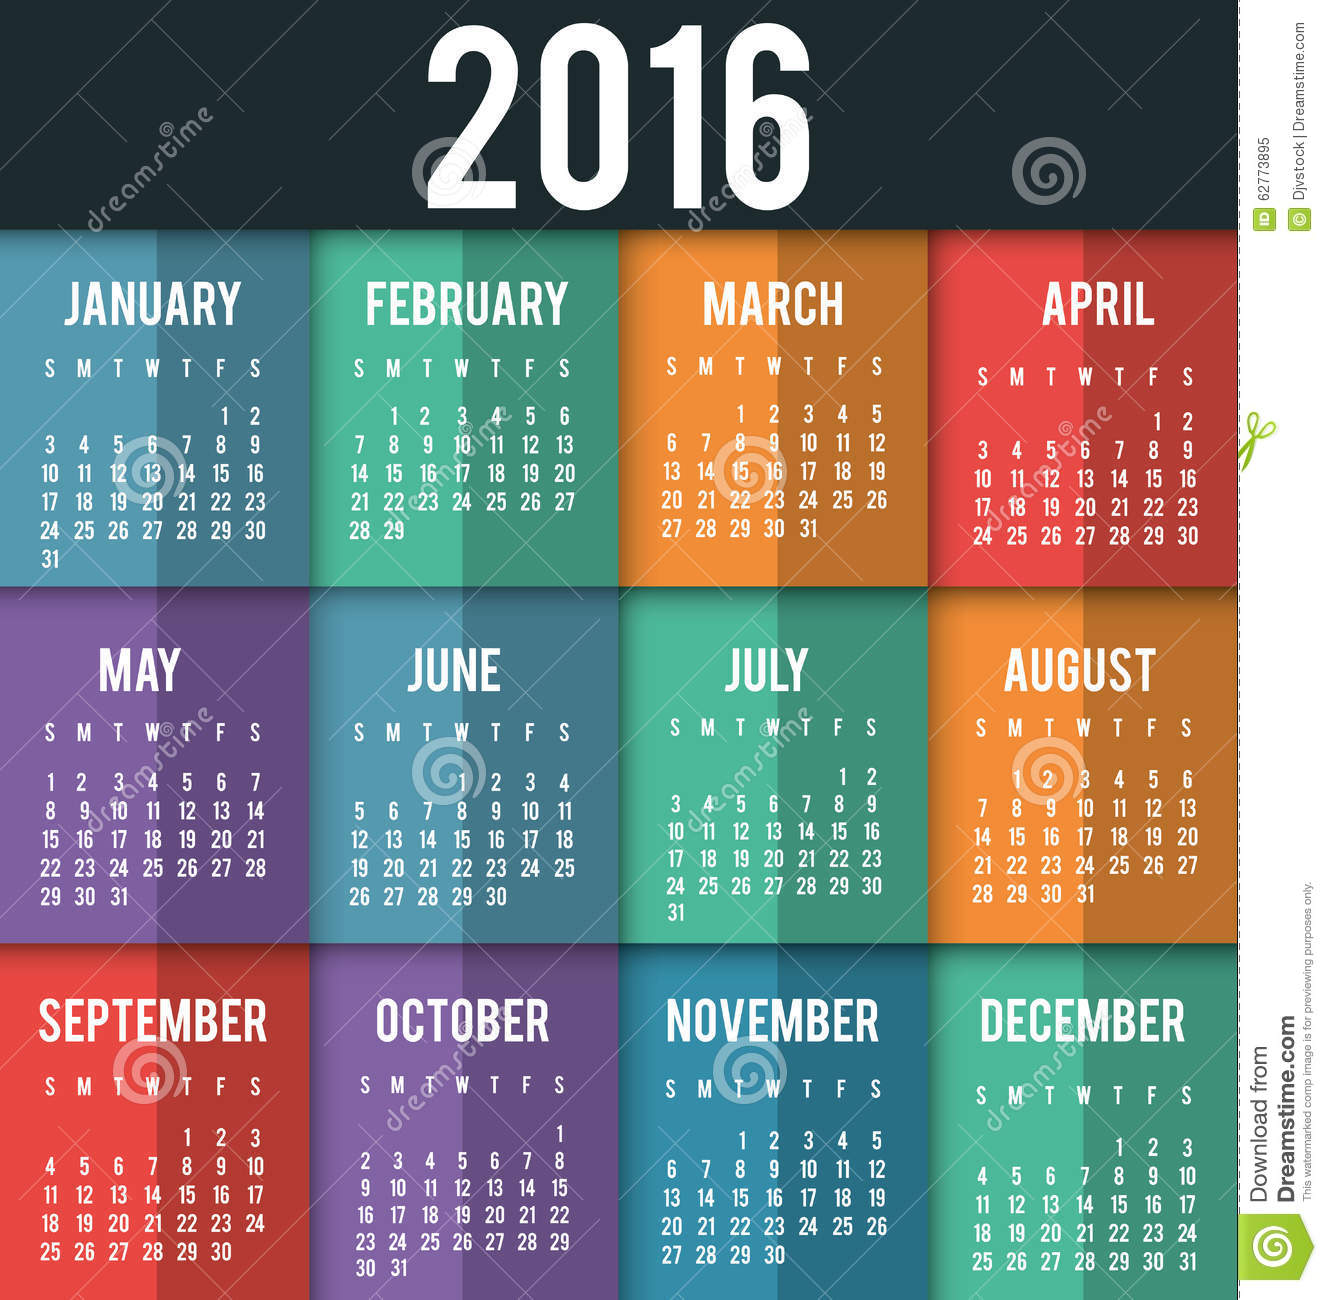 New Year Calendar Design : New year calendar schedule stock vector image